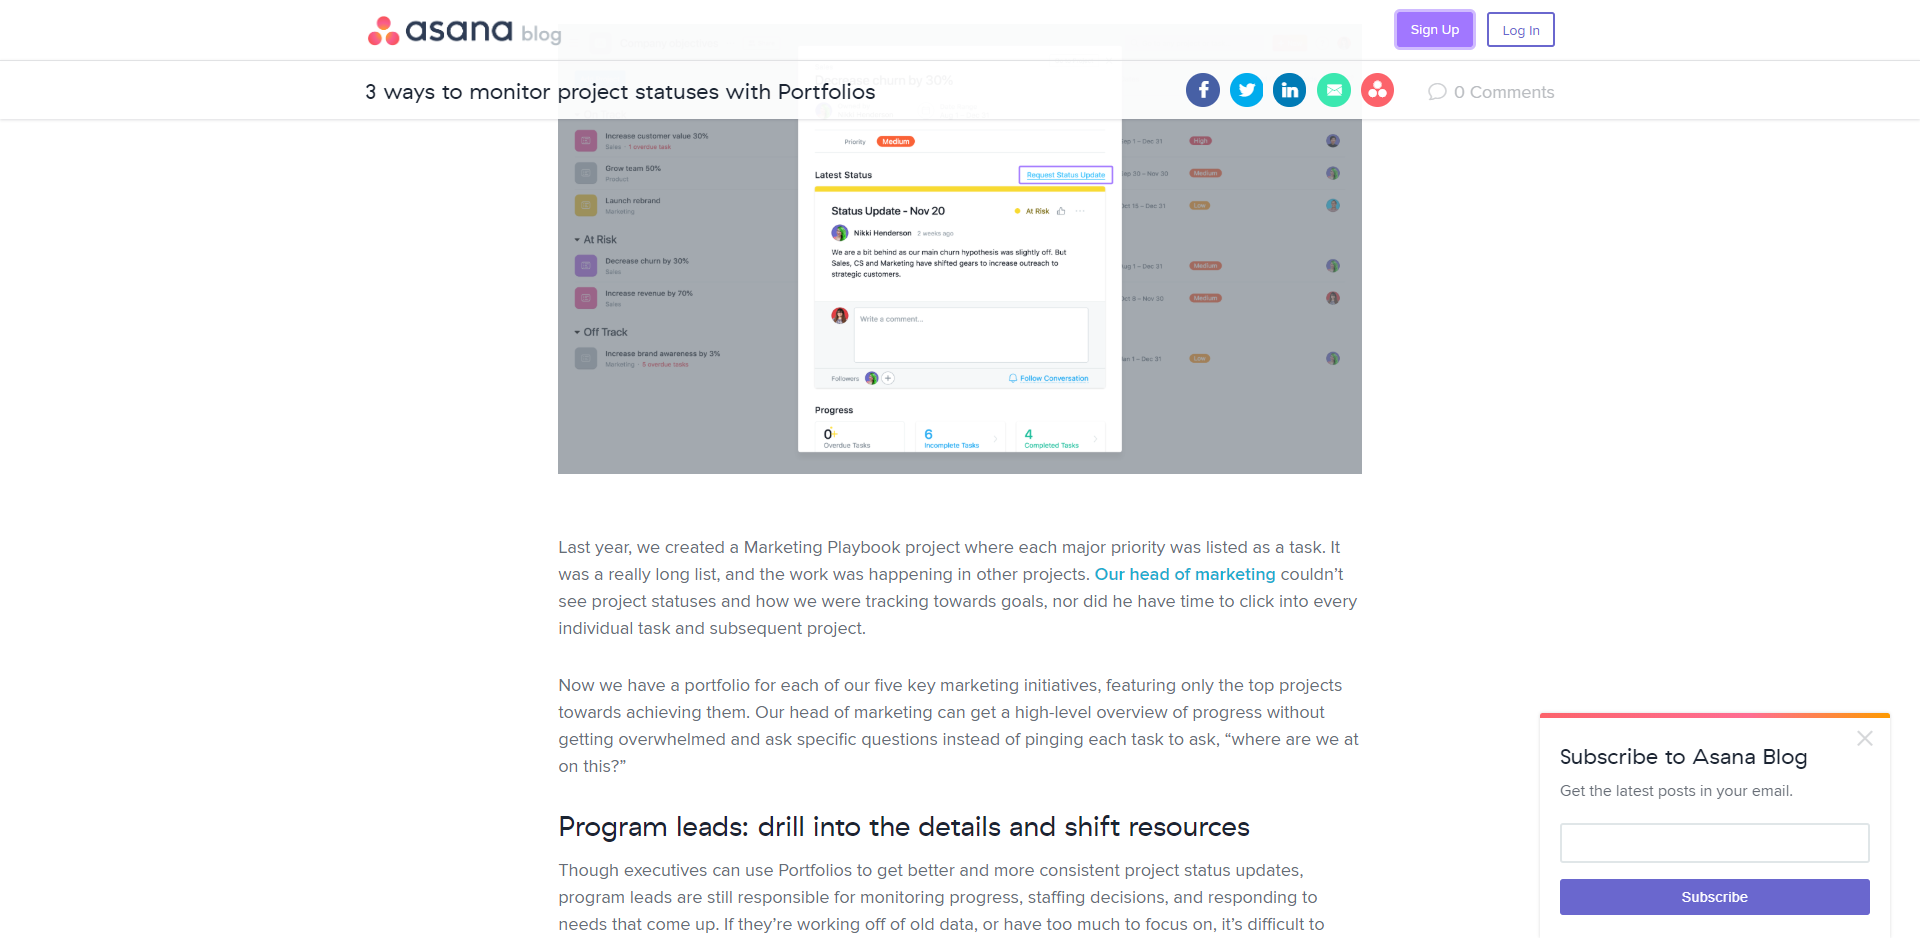 A slide-in popup on Asana's blog